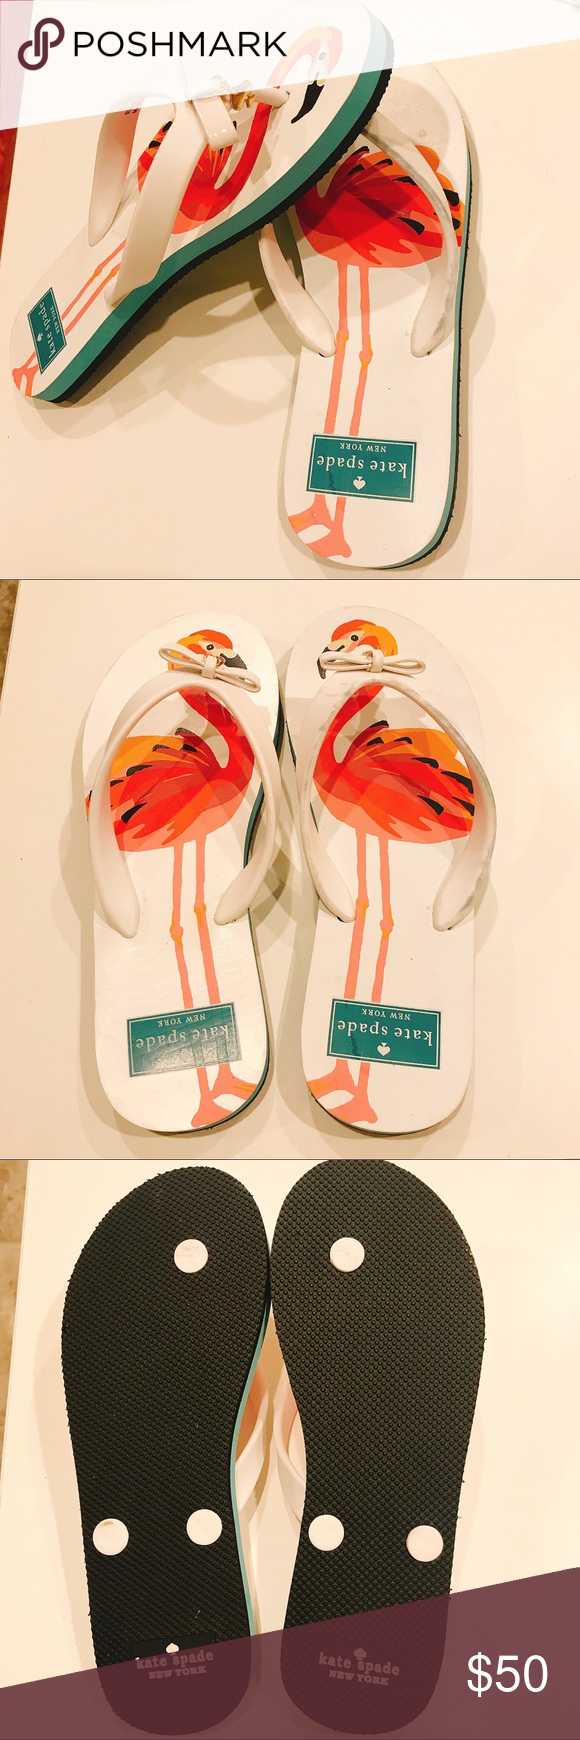 f336c2f449d6 NWOT Kate Spade Flamingo Flip Flops NWOT! Unused and unworn. No original  packaging or tags - as I thought I would keep them. Size 5-6.